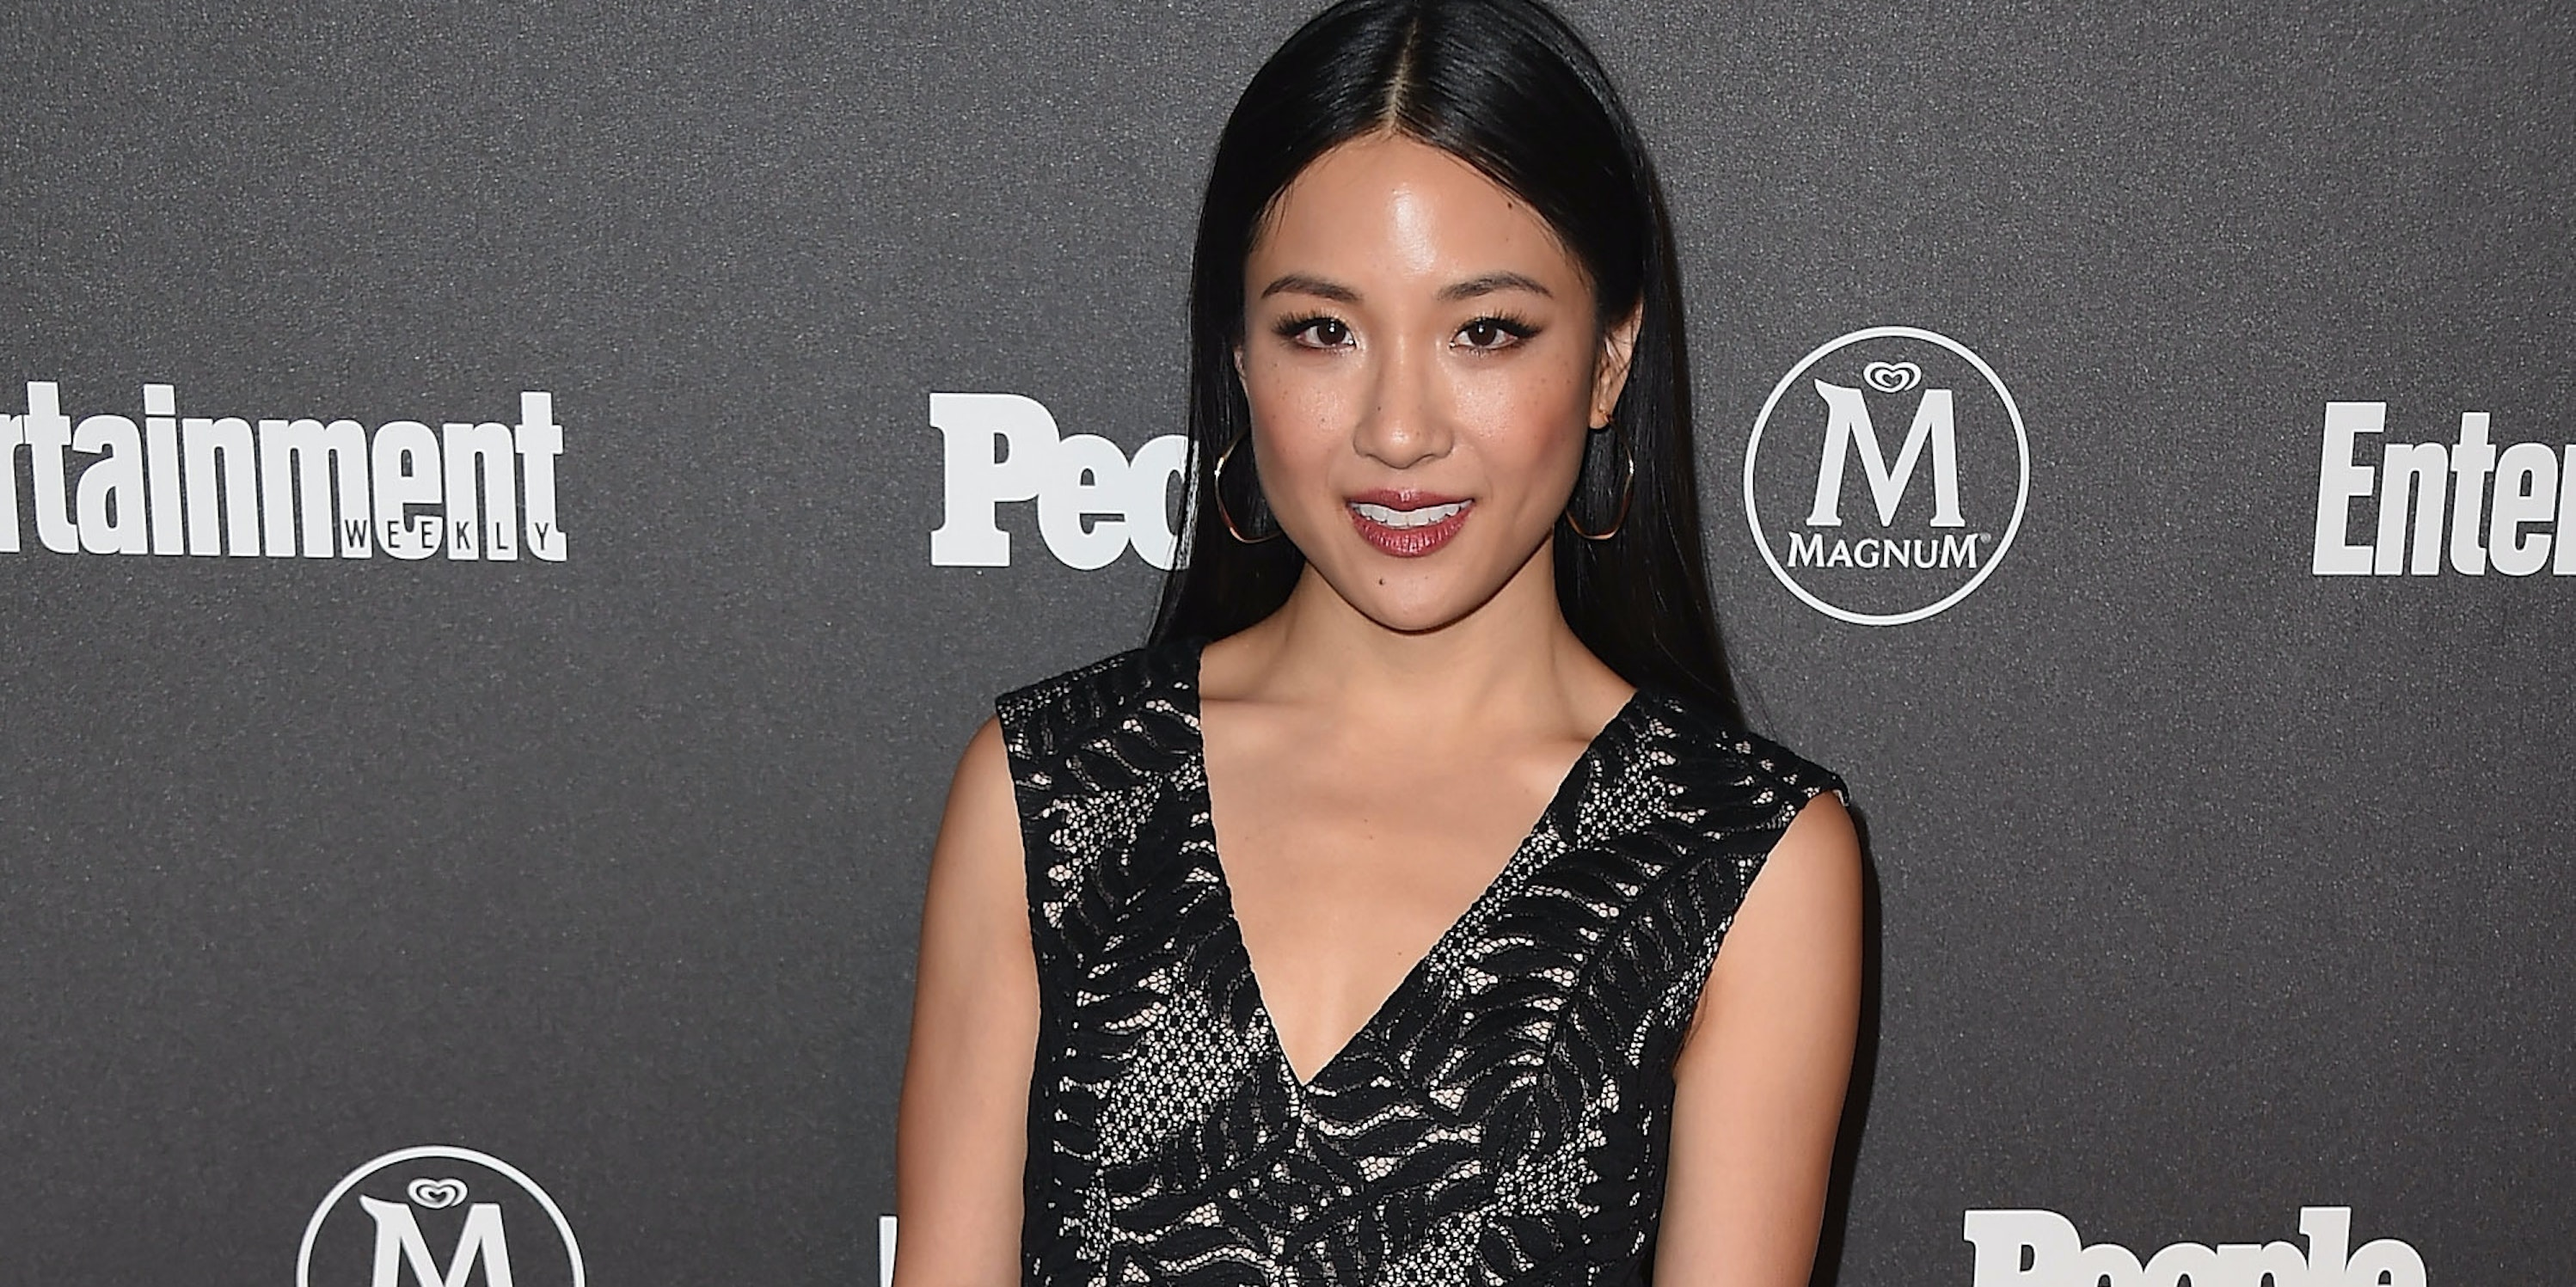 NEW YORK, NY - MAY 16:  Actress Constance Wu attends the 2016 Entertainment Weekly & People New York Upfronts VIP Party at Cedar Lake on May 16, 2016 in New York City.  (Photo by Nicholas Hunt/Getty Images)